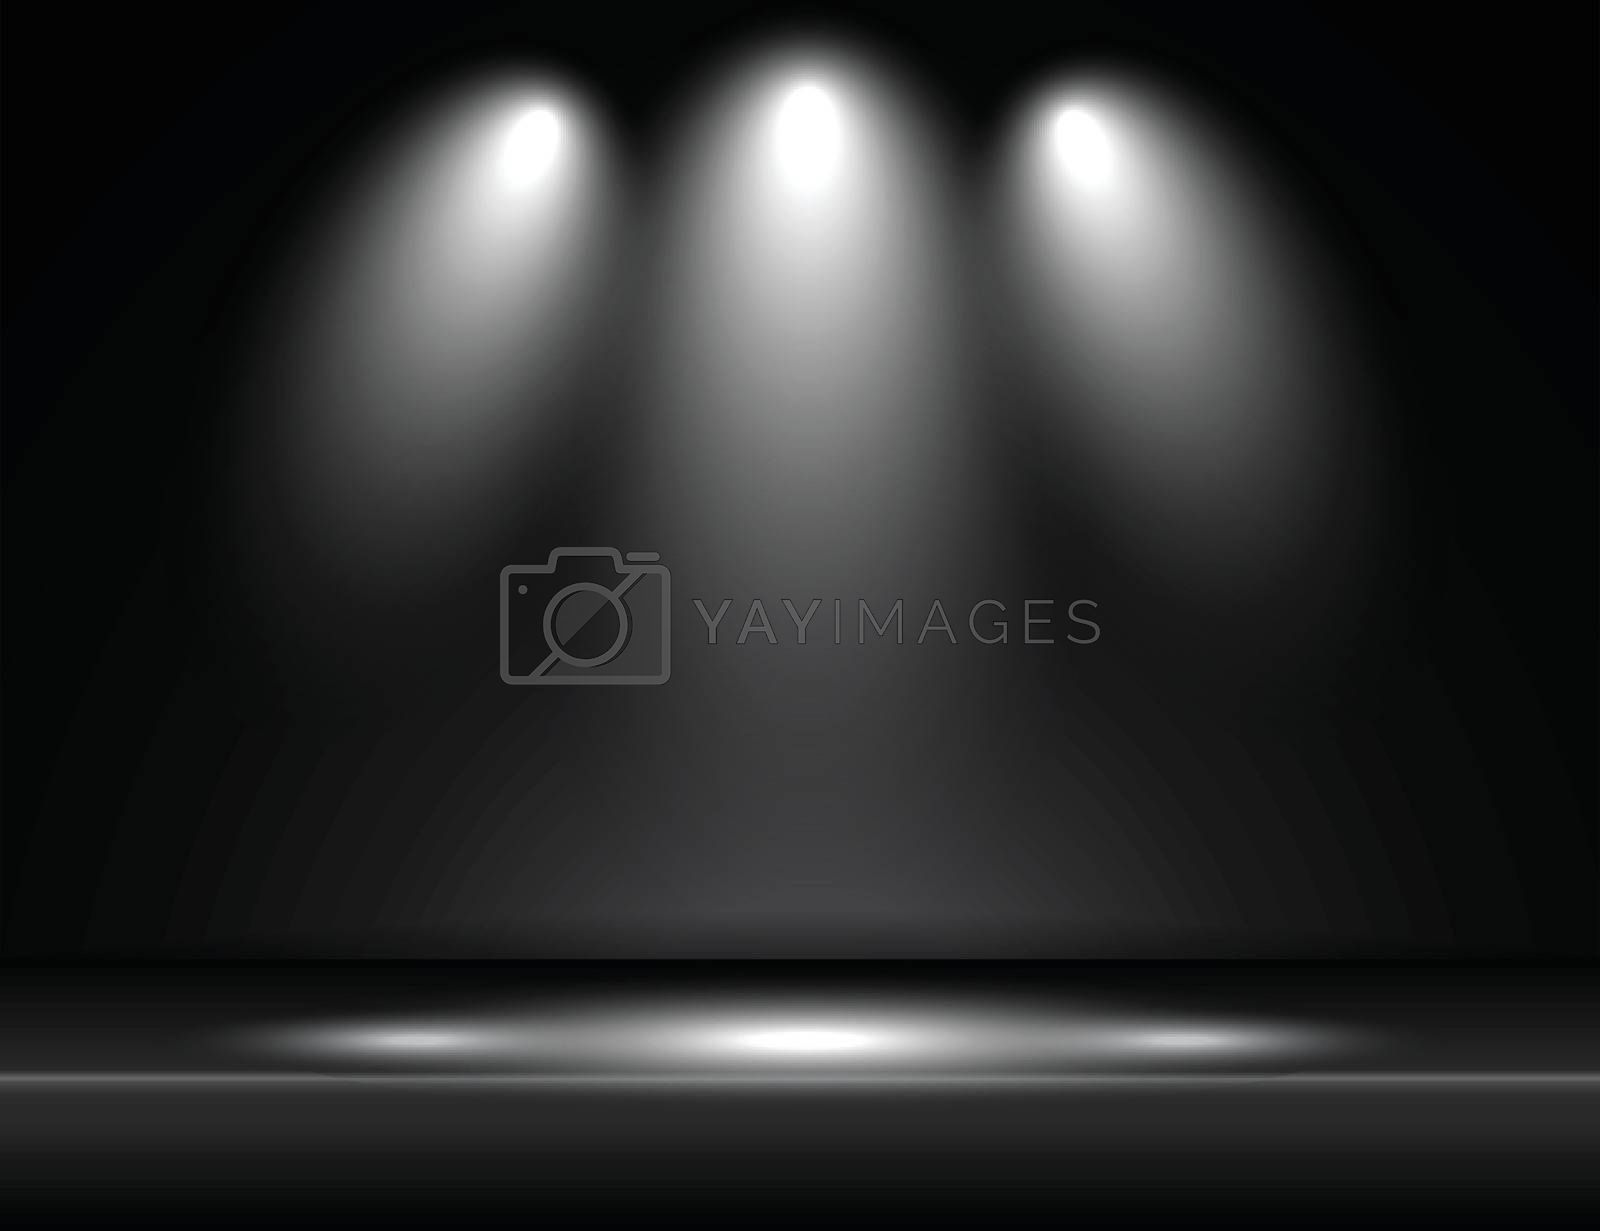 Spotlight black light rays room studio background for use in various applications and design products vector